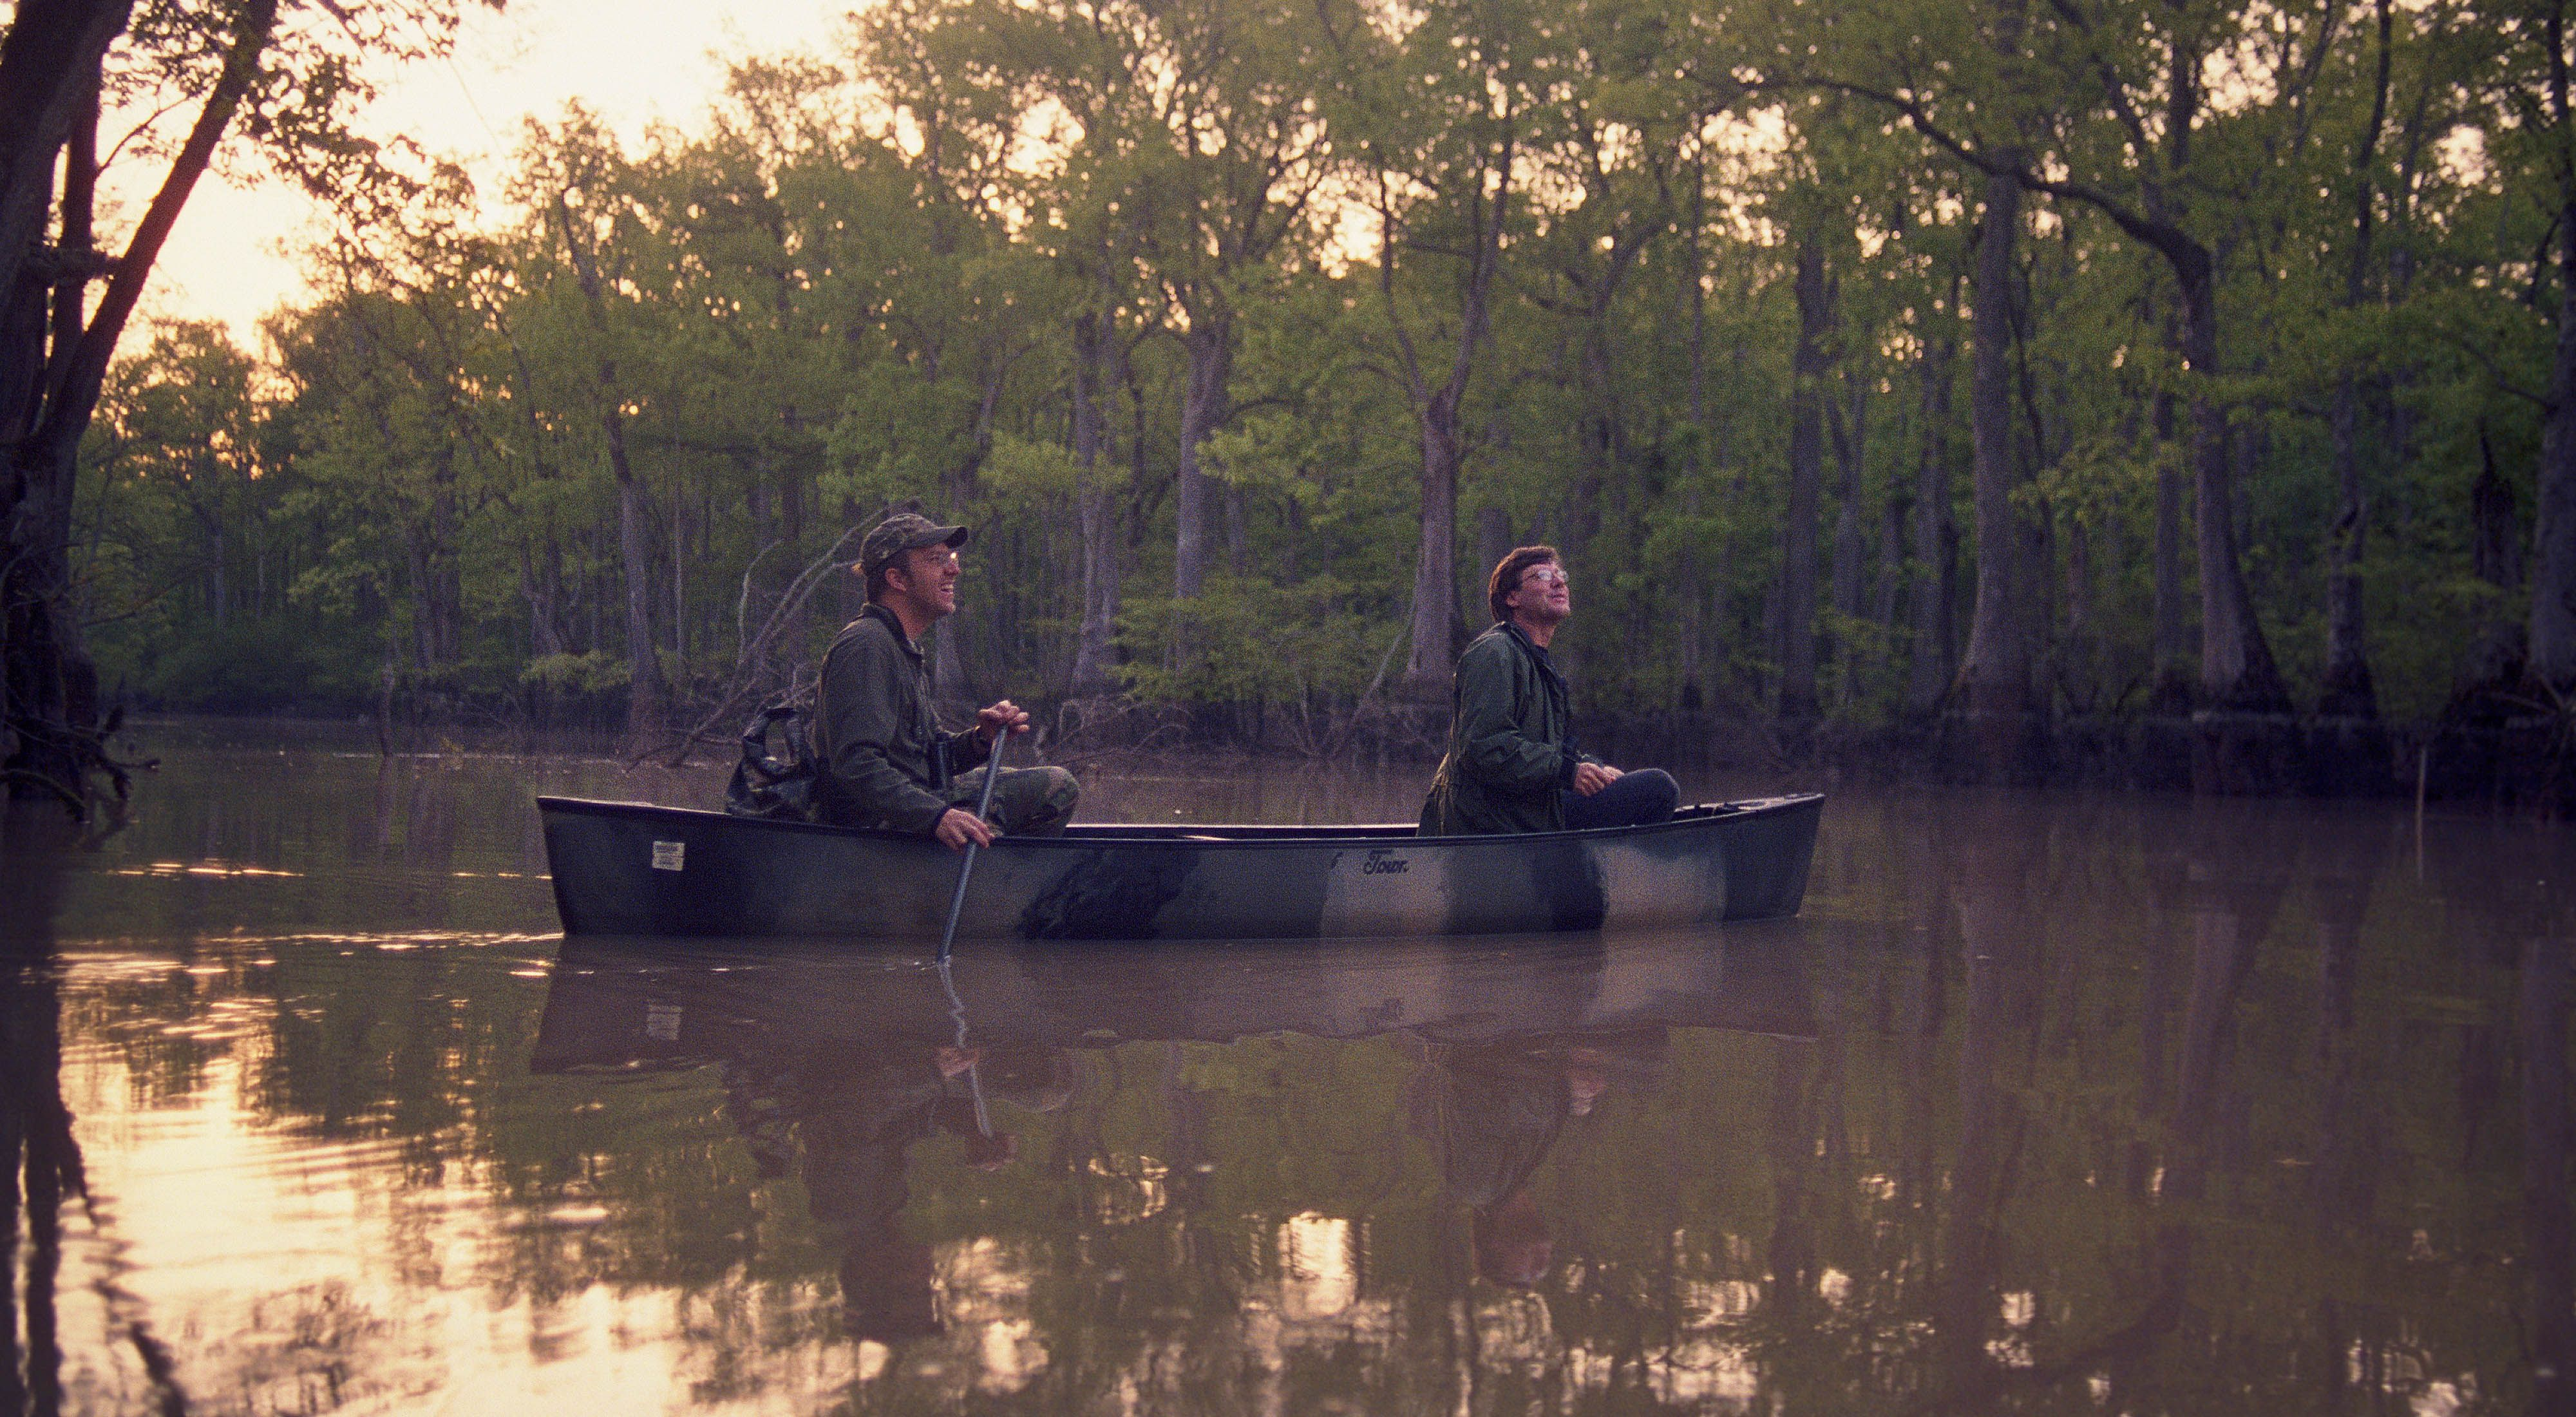 World-renowned bird expert David Sibley, in front of the canoe with researcher Elliott Swarthout search the Big Woods of Arkansas for the elusive Ivory-billed Woodpecker during the Spring of 2005.